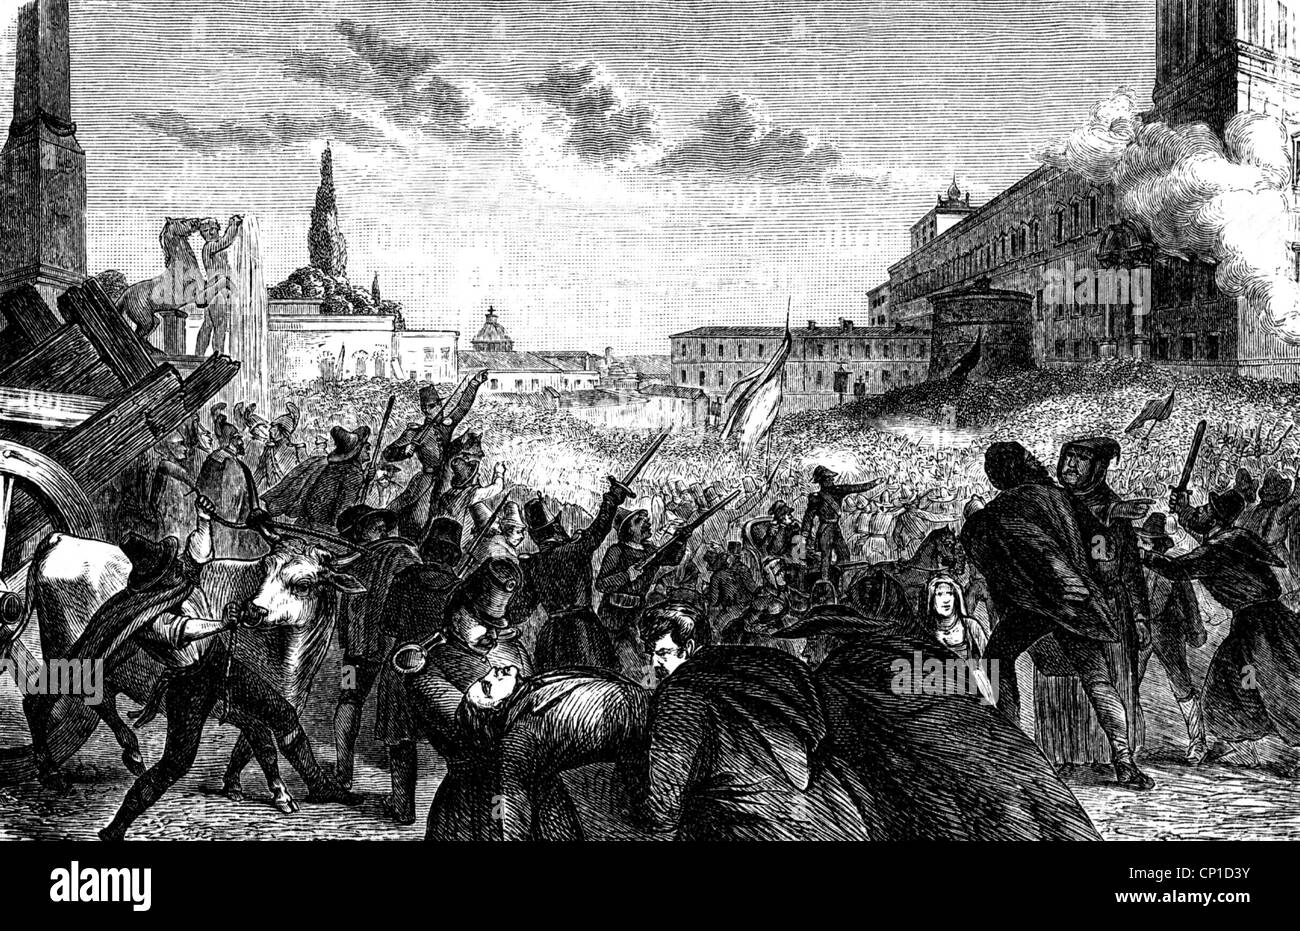 events, revolutions of 1848 - 1849, Italy, Rome, the Quirinal Palace,  residence of Pope Pius IX, under siege, 16. - 24.11.1848, scene during the  first ...